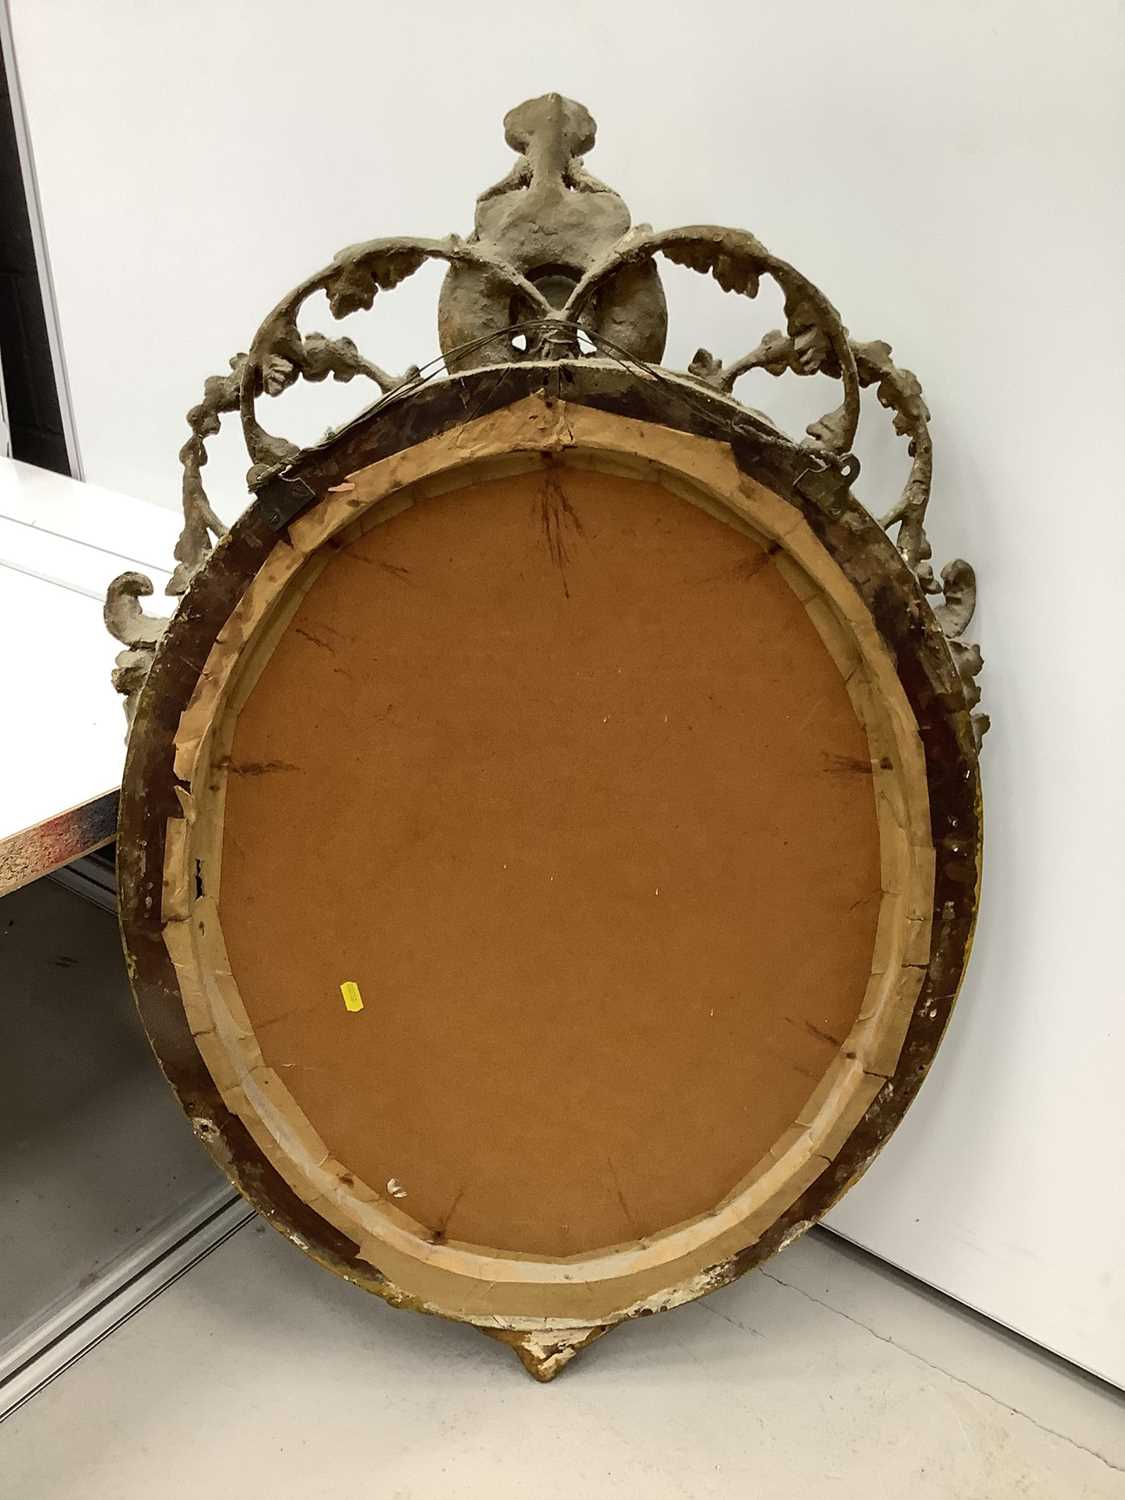 Oval wall mirror in green and gilt frame with cherub mount, 100cm x 61cm - Image 2 of 5